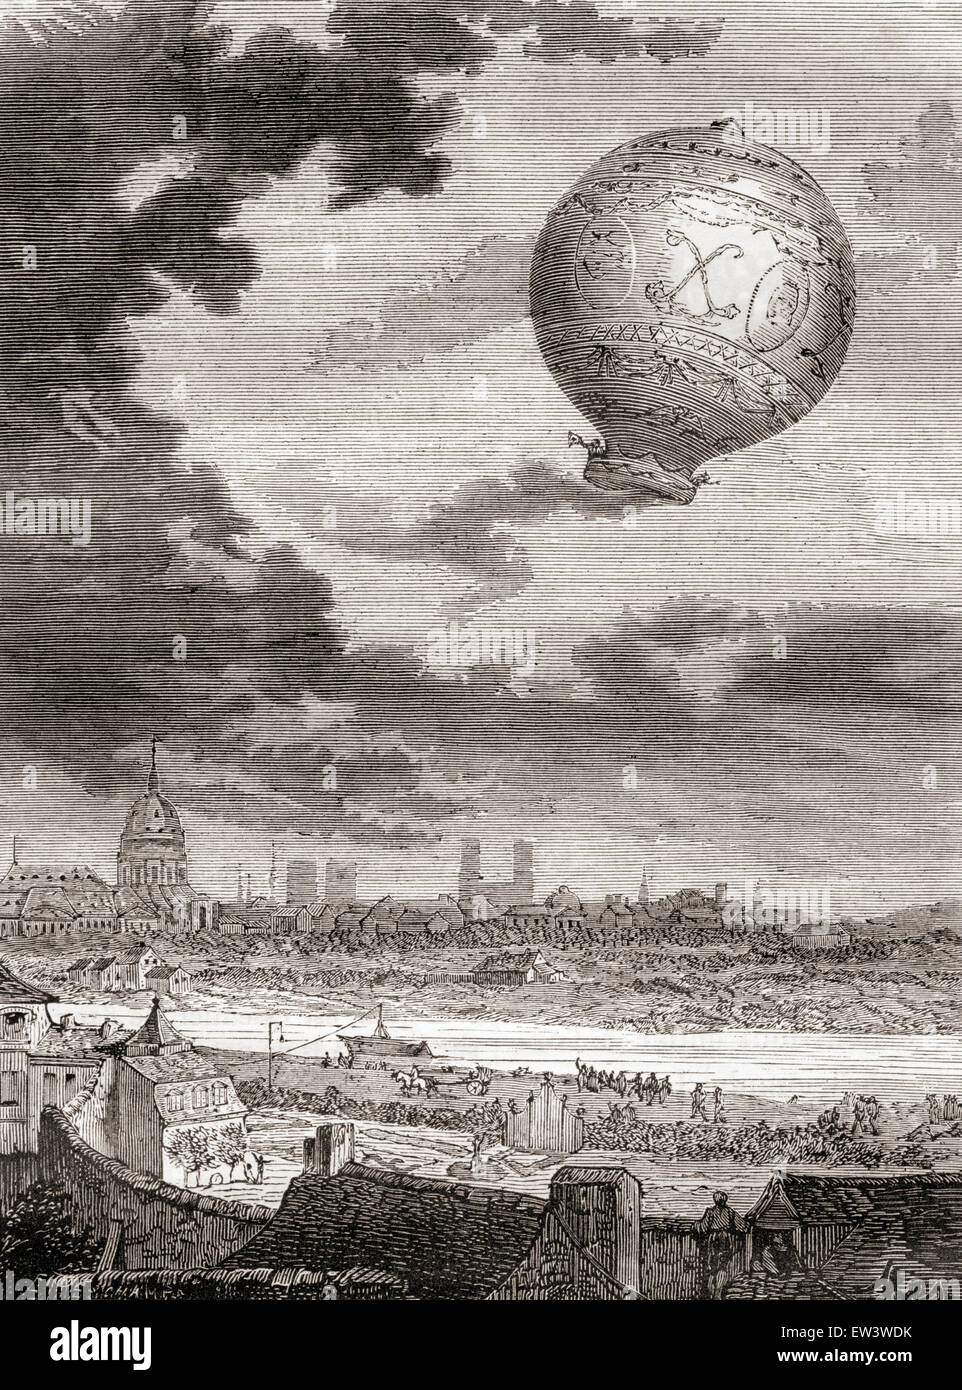 The first untethered balloon flight, by Jean-François Pilâtre de Rozier and the Marquis d'Arlandes on 21 November Stock Photo